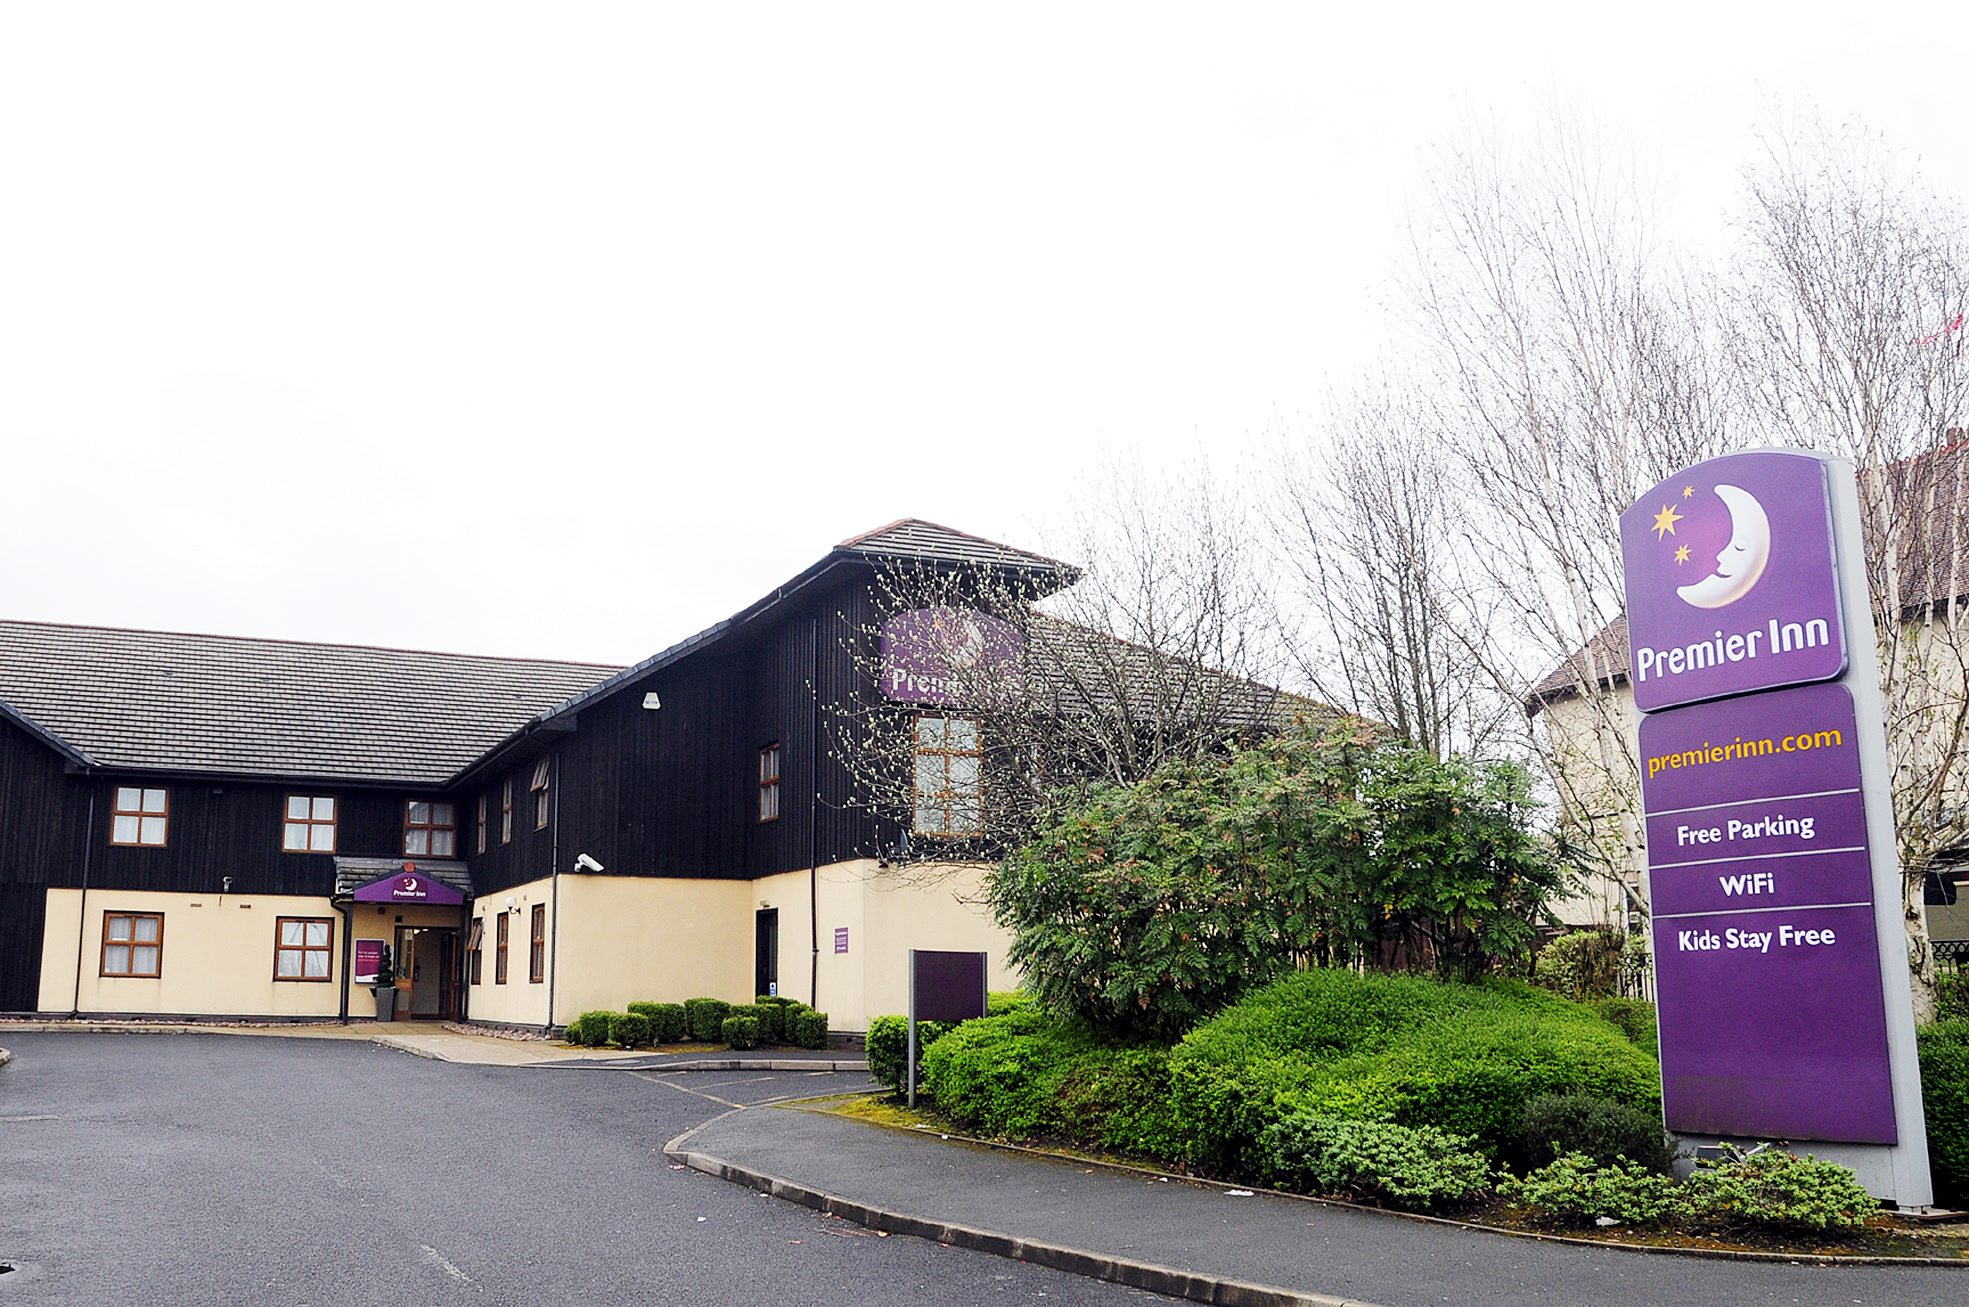 Premier Inn, Chorley New Road, Horwich